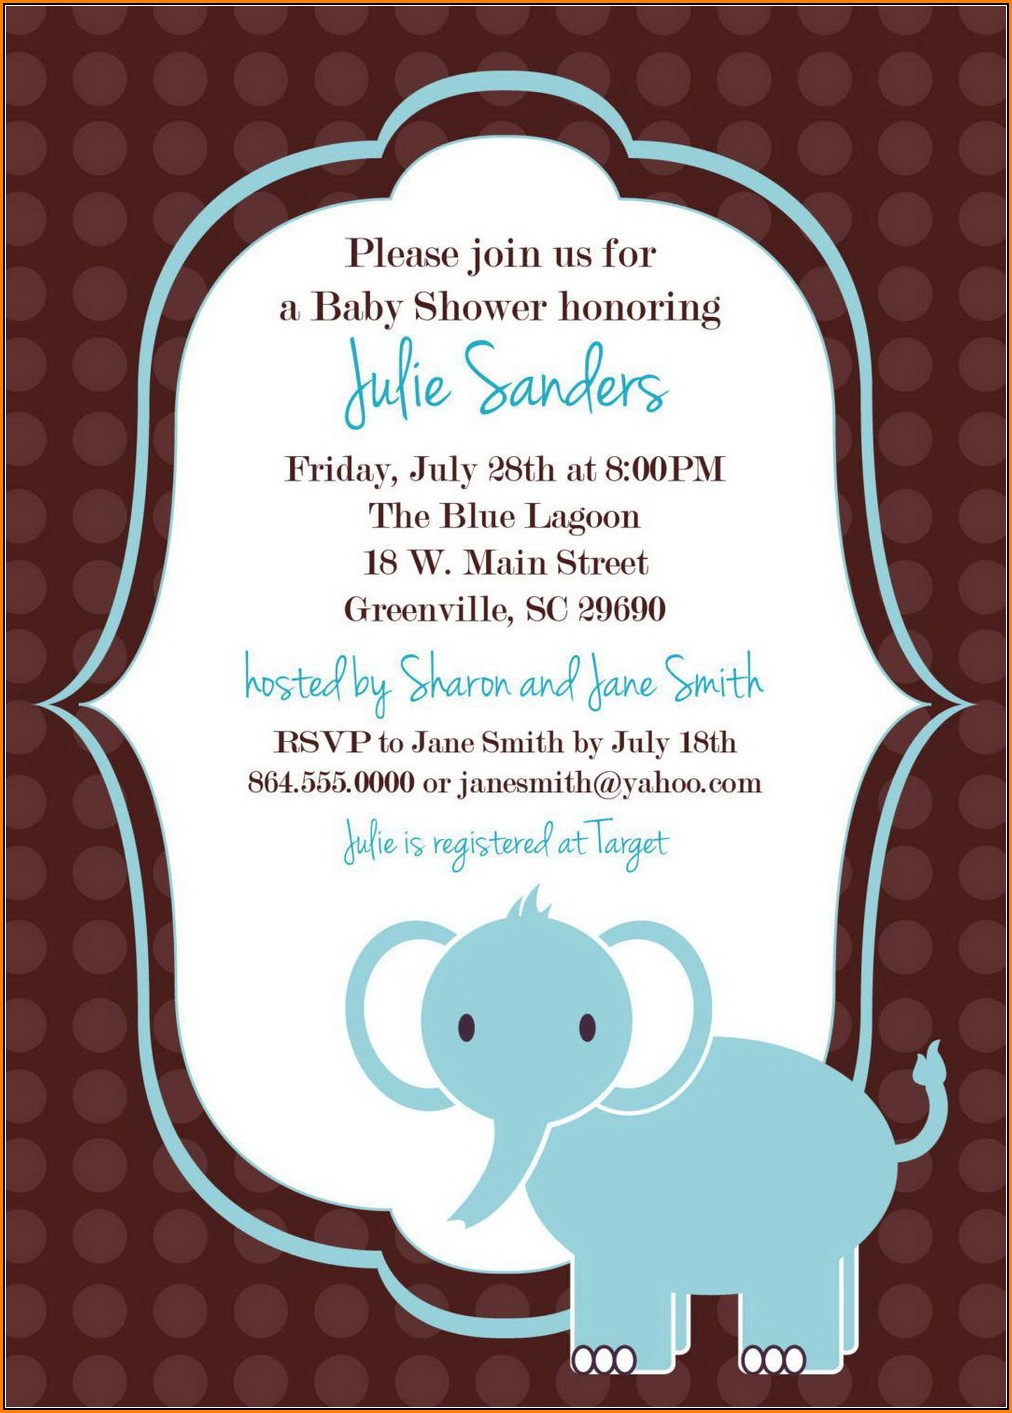 Baby Shower Invite Template Indesign